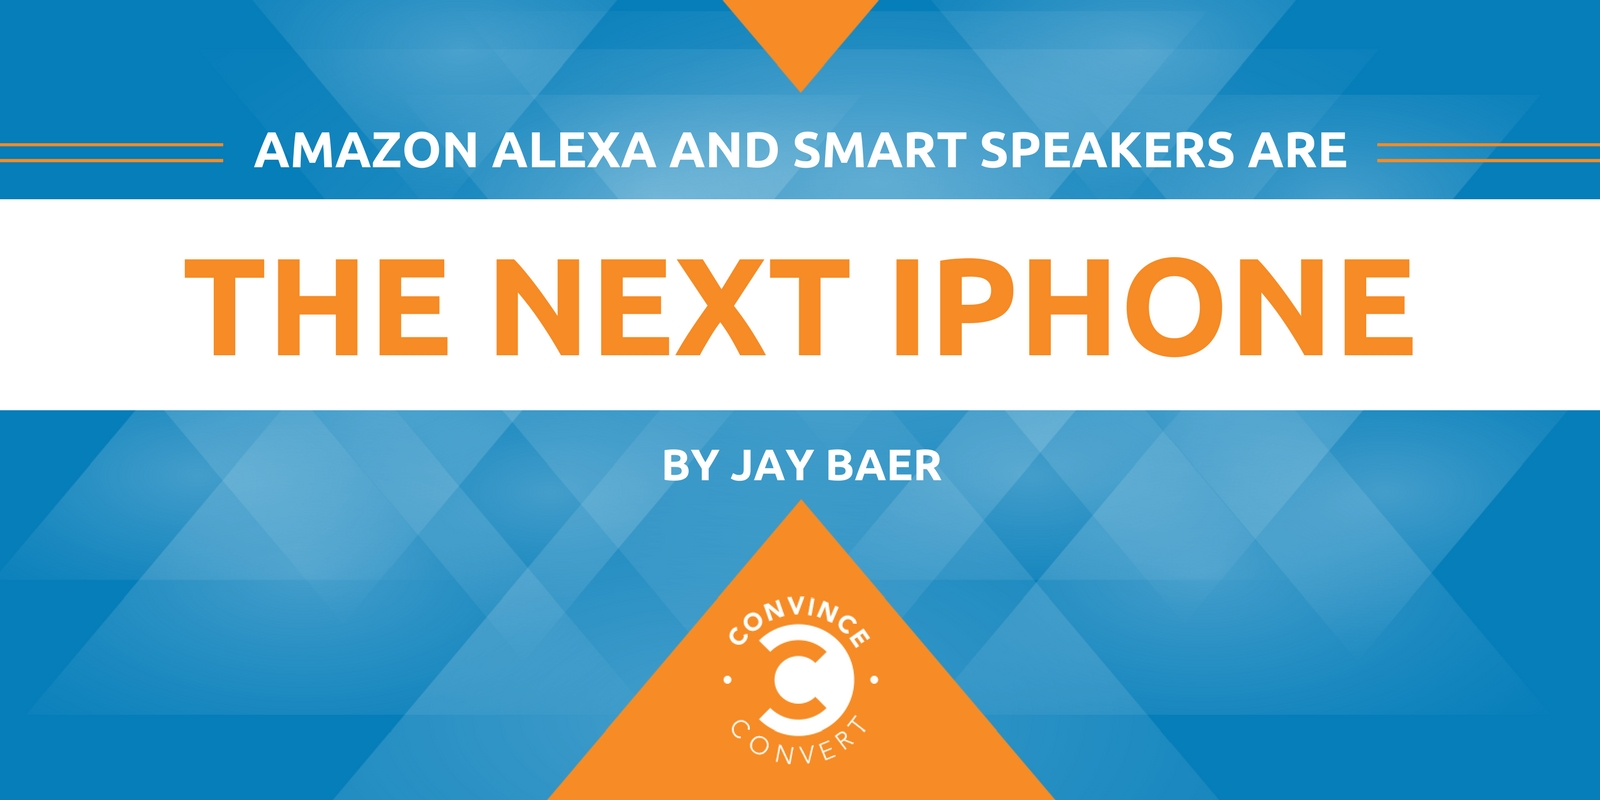 Amazon Alexa and Smart Speakers Are the Next iPhone